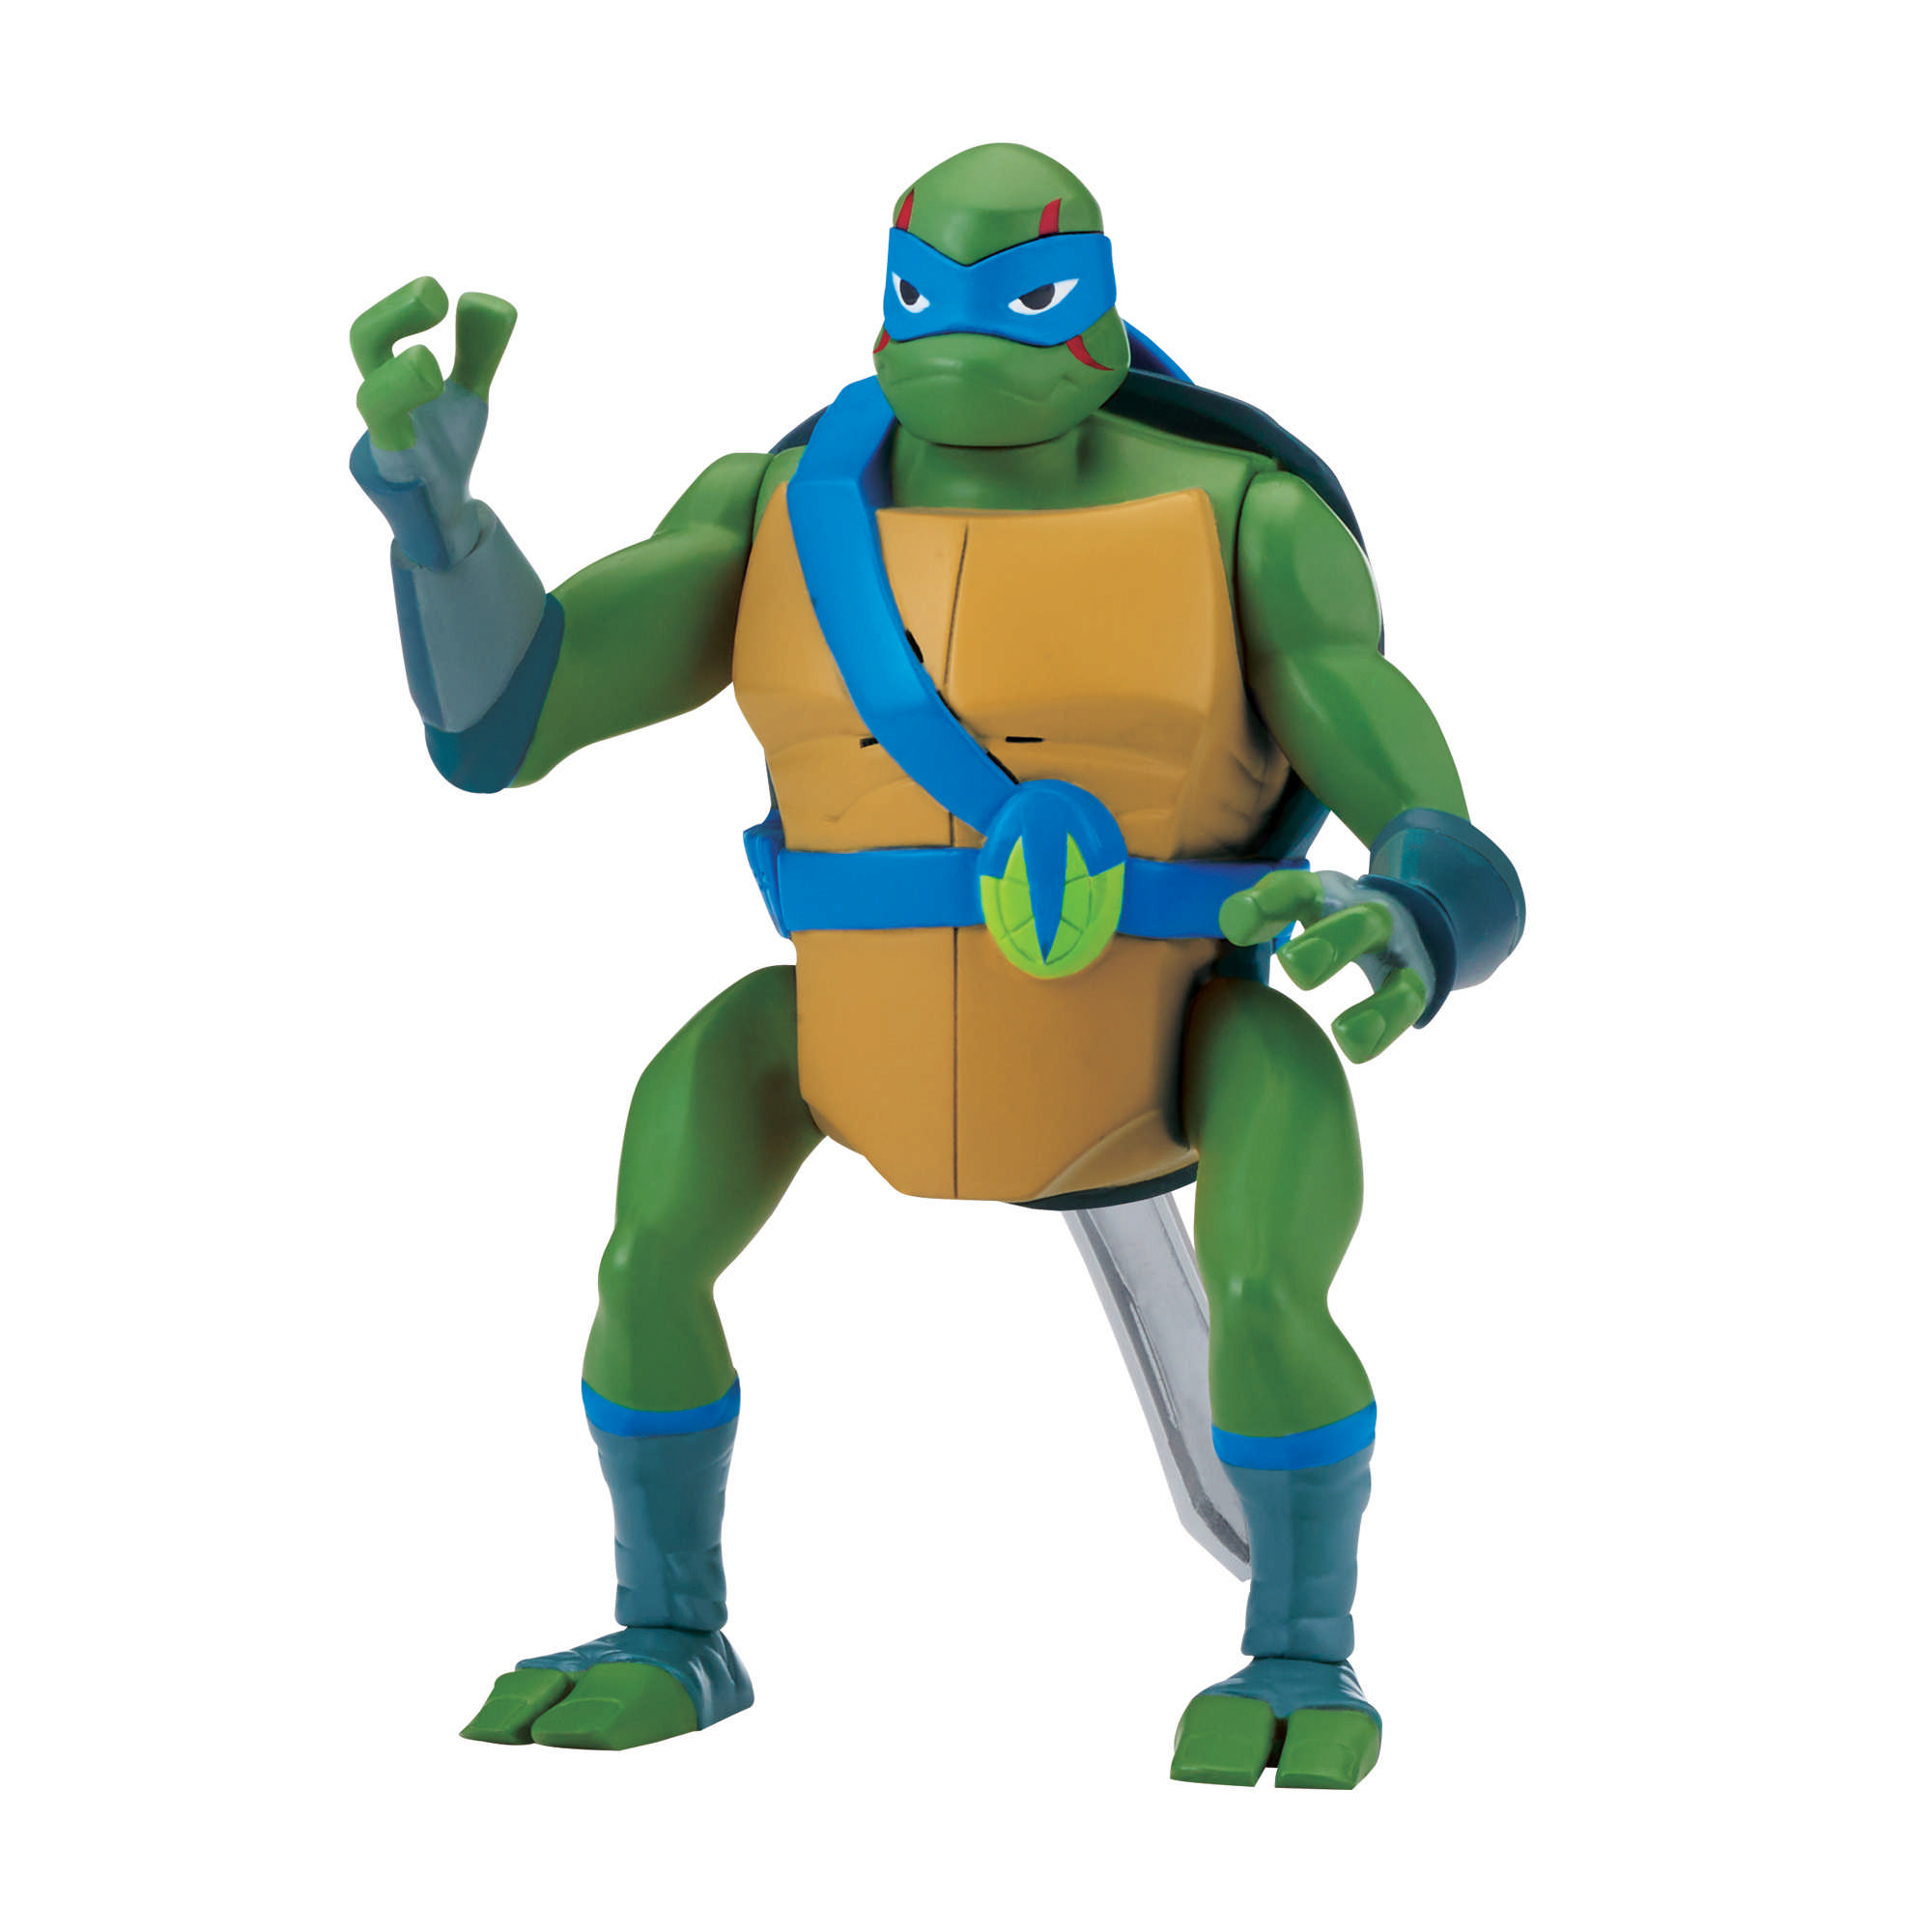 Ninja Turtles Toys : Rise of the teenage mutant ninja turtles toys debut before